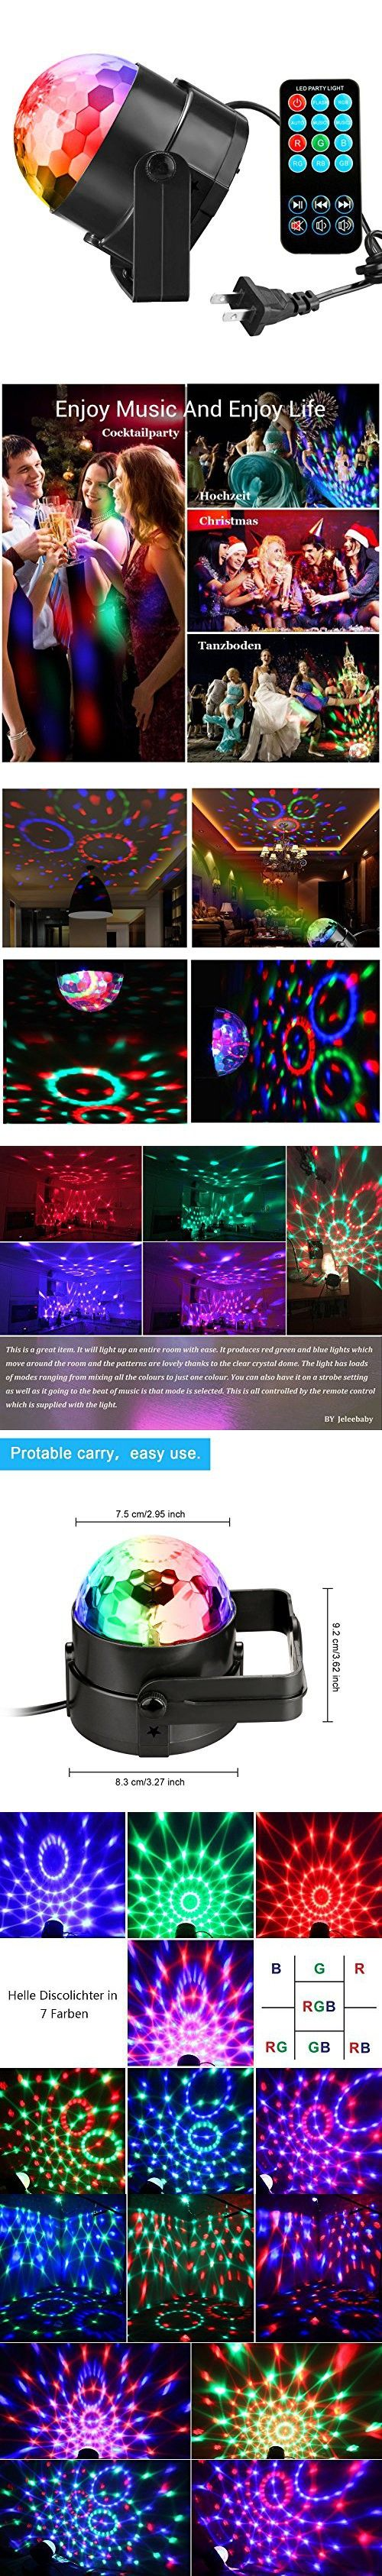 Disco Ball Party Lights Vnina 3W 7 Colors Mini Magic Stage Lighting Effects Sound Activated DJ Light Strobe LED Lights with Remote for Kids Toys Birthday Party Karaoke Club Wedding Holiday Night Light